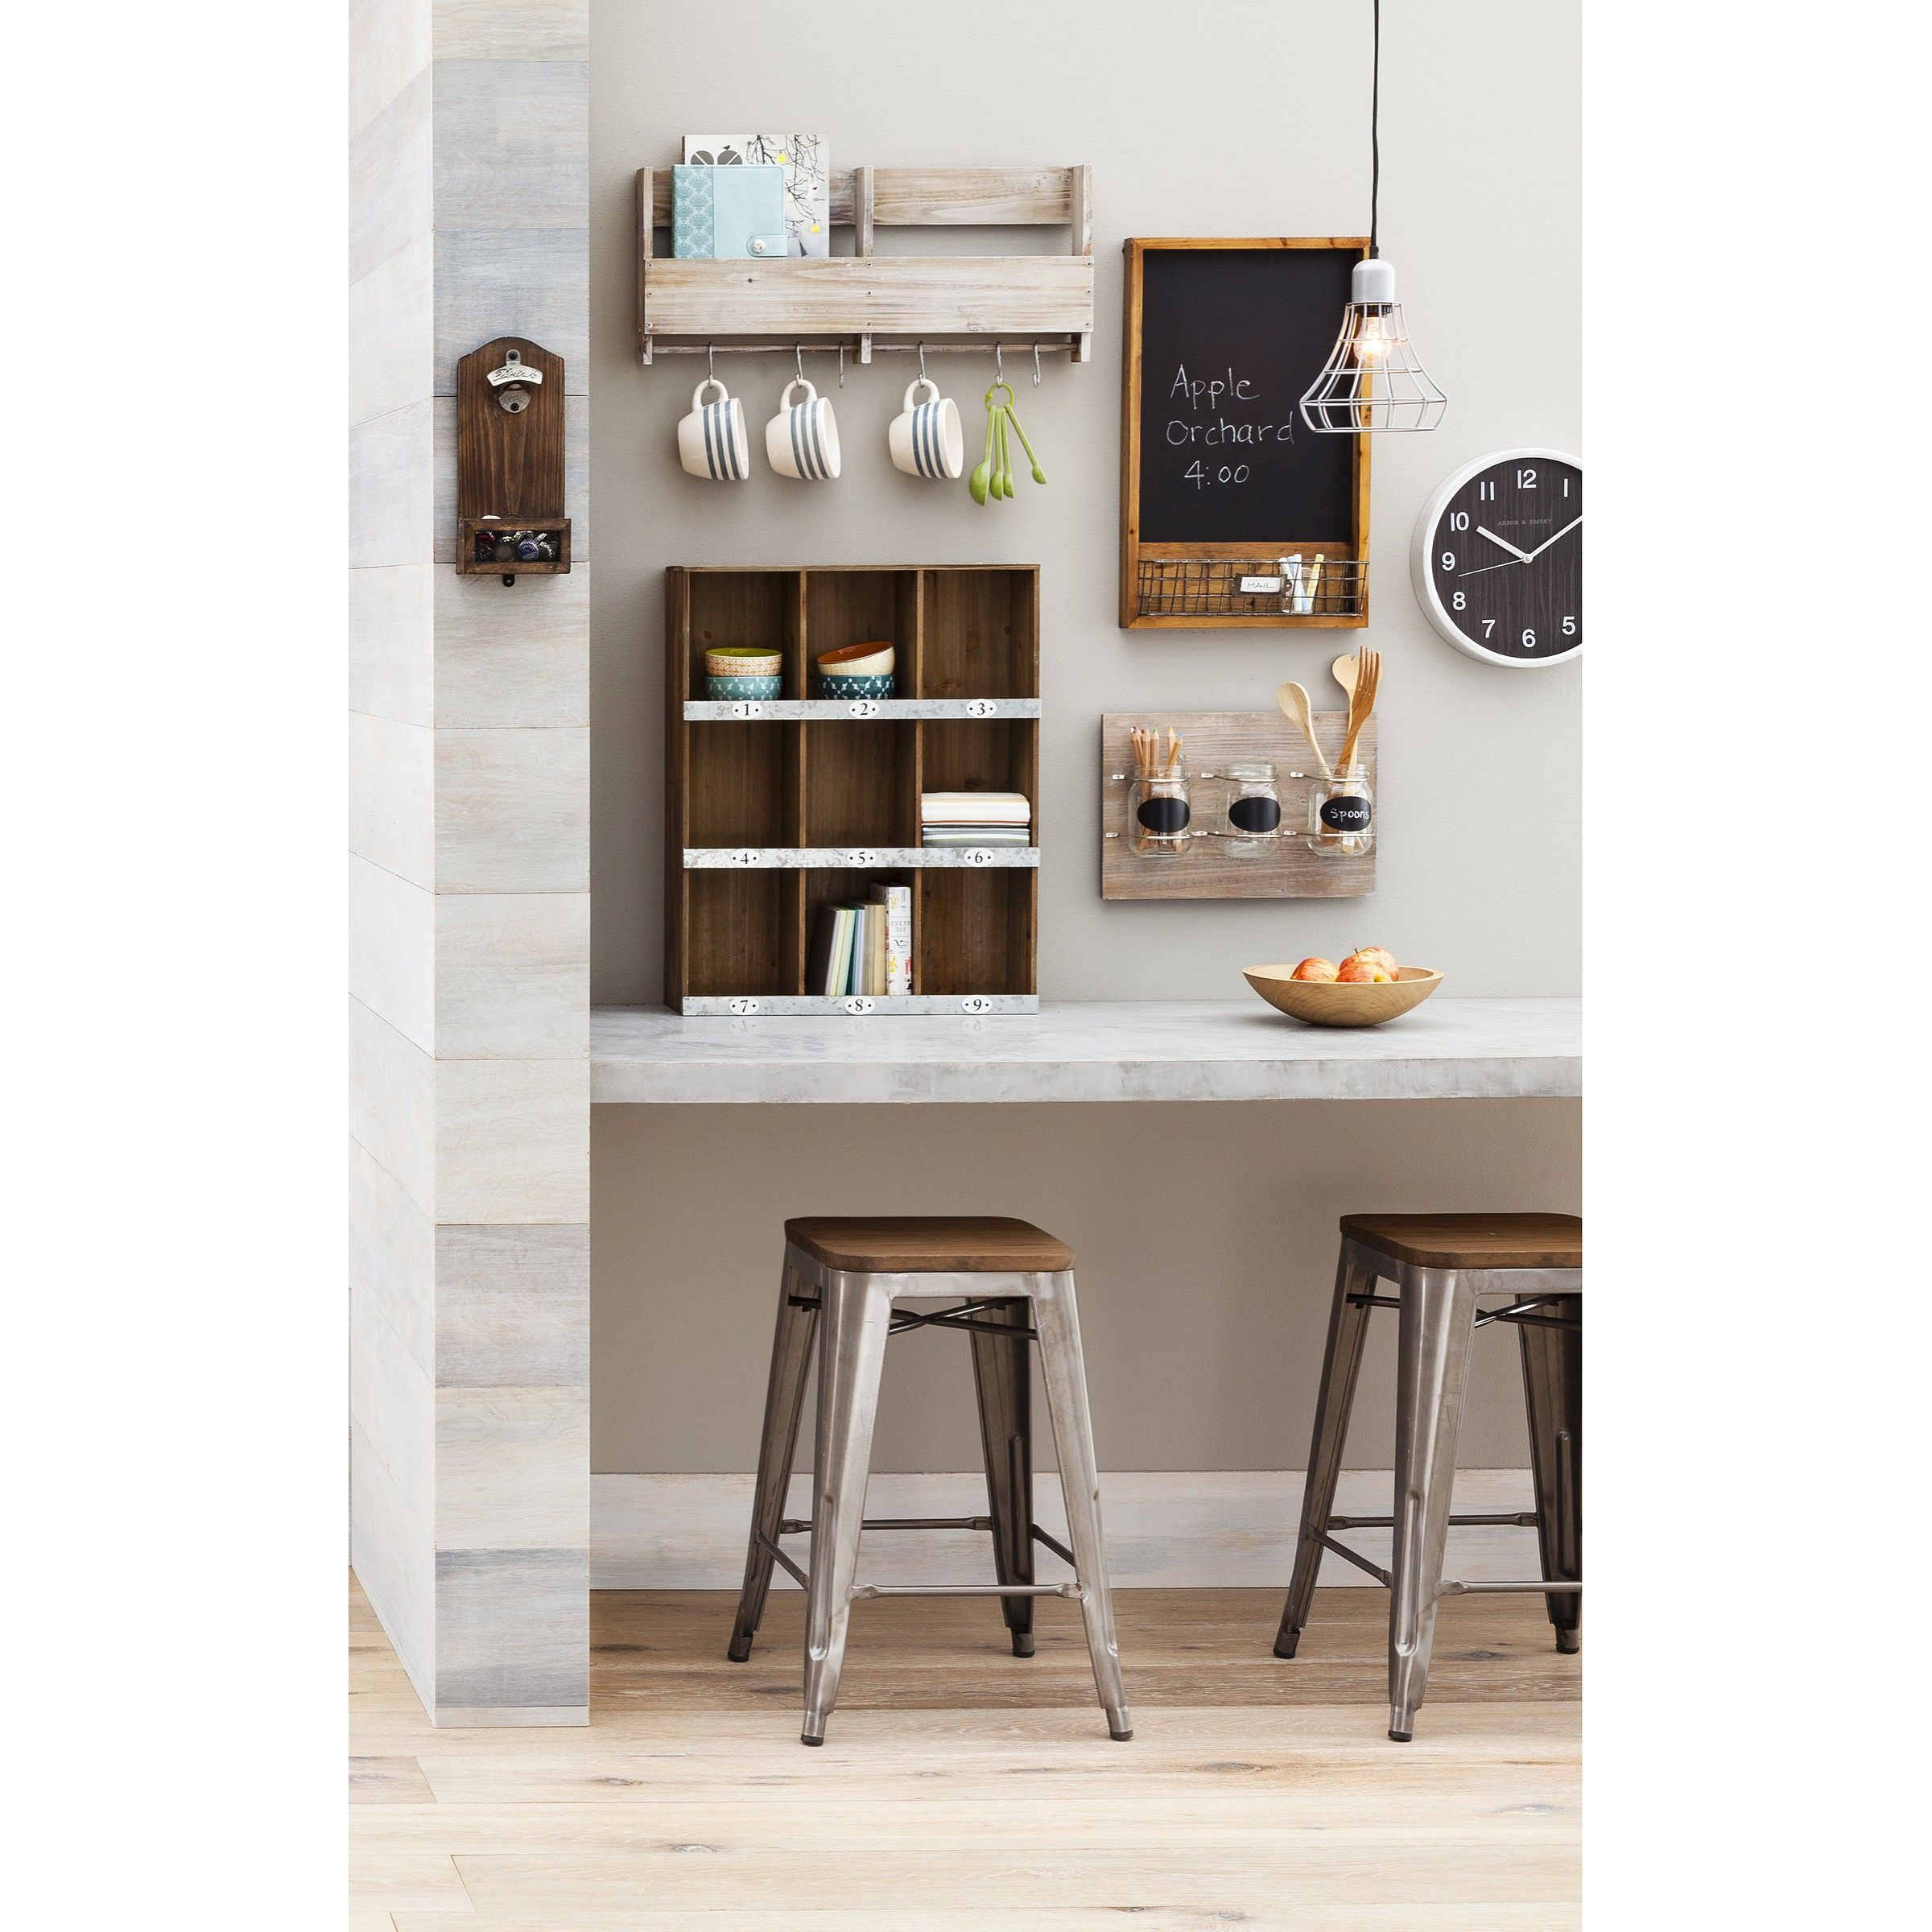 Dining Room Wall Shelves Wooden Shelf With S Hooks Threshold Home Decor